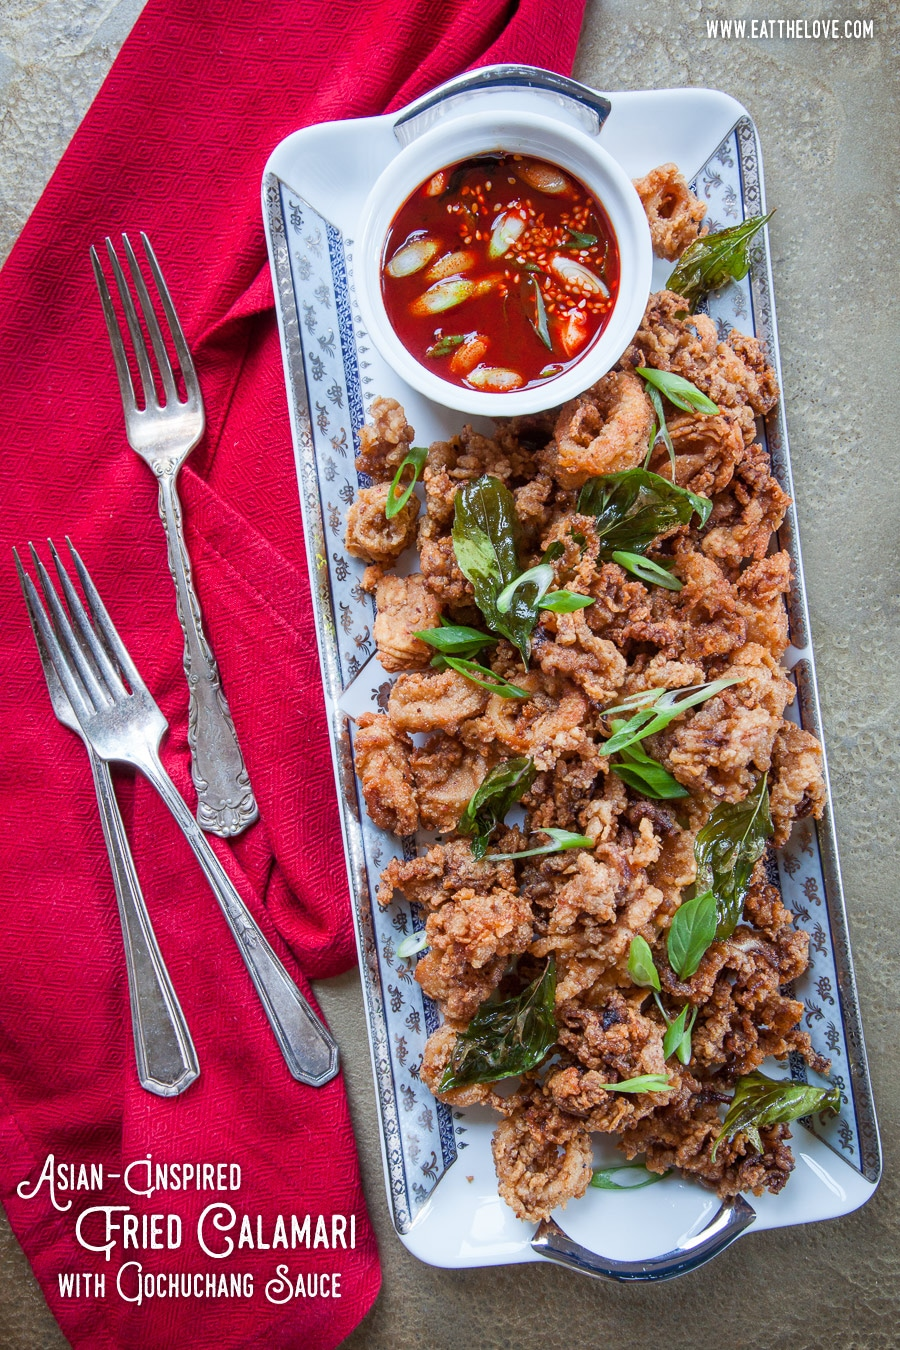 Asian-Inspired Fried Calamari with Gochuchang Dipping Sauce. Photo and recipe by Irvin Lin of Eat the Love.